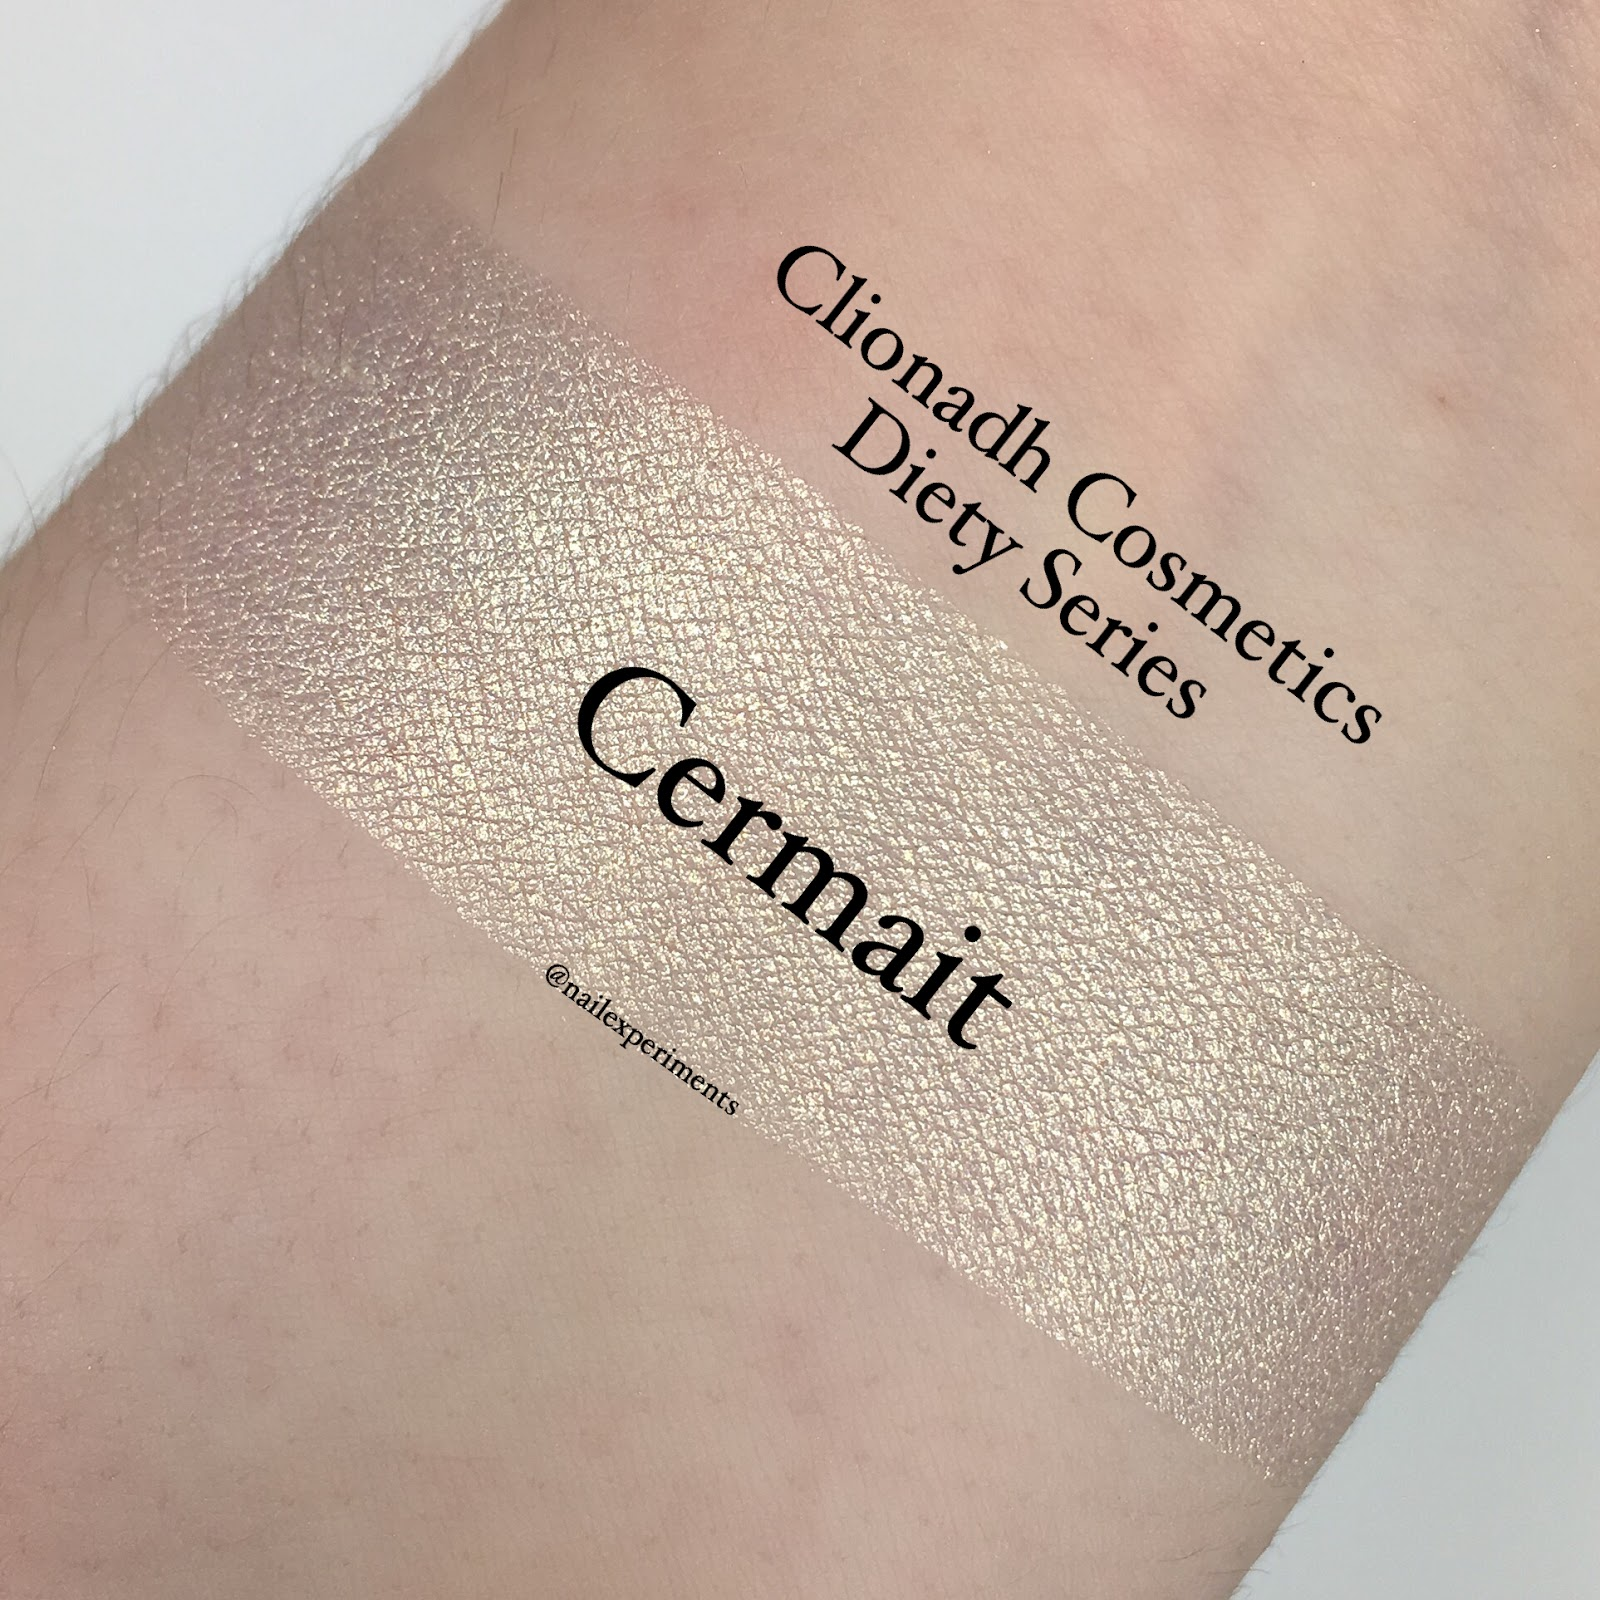 Nailexperiments swatches Cermait from  Clionadh Cosmetics